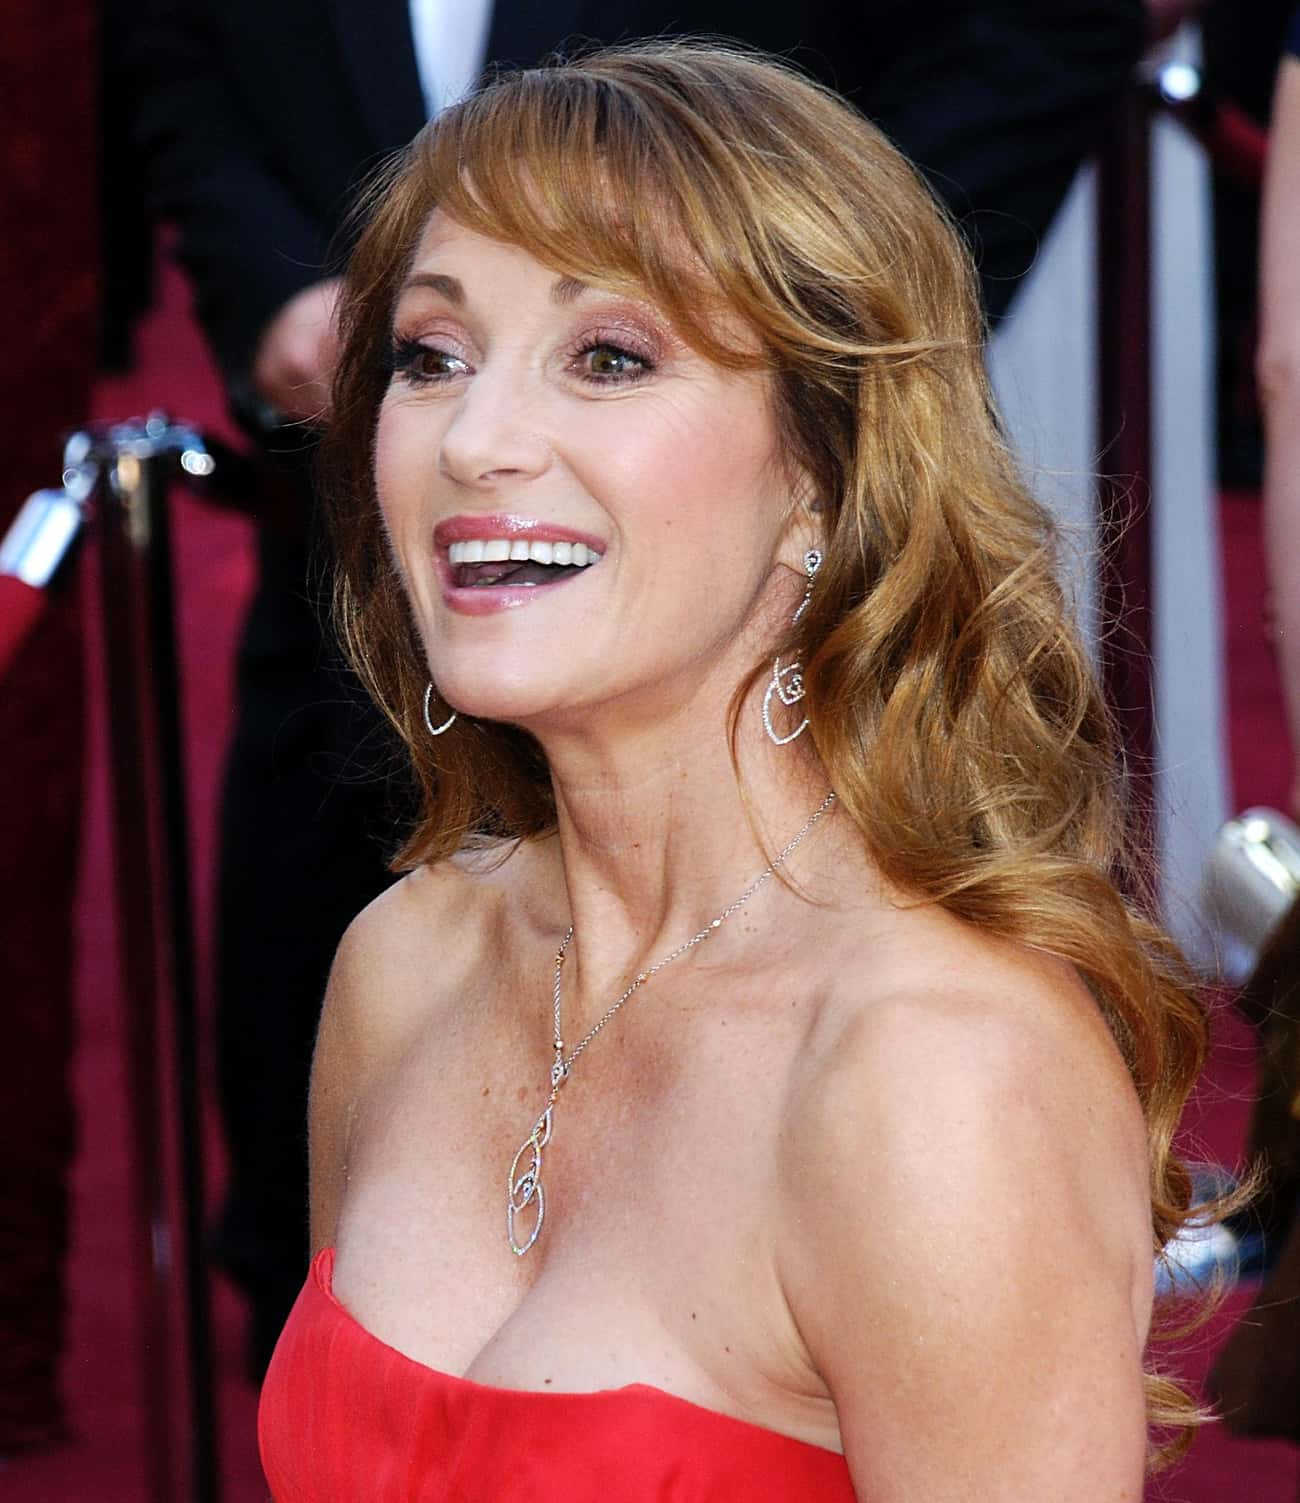 Jane Seymour is listed (or ranked) 3 on the list Stunning Celeb Women Over 60